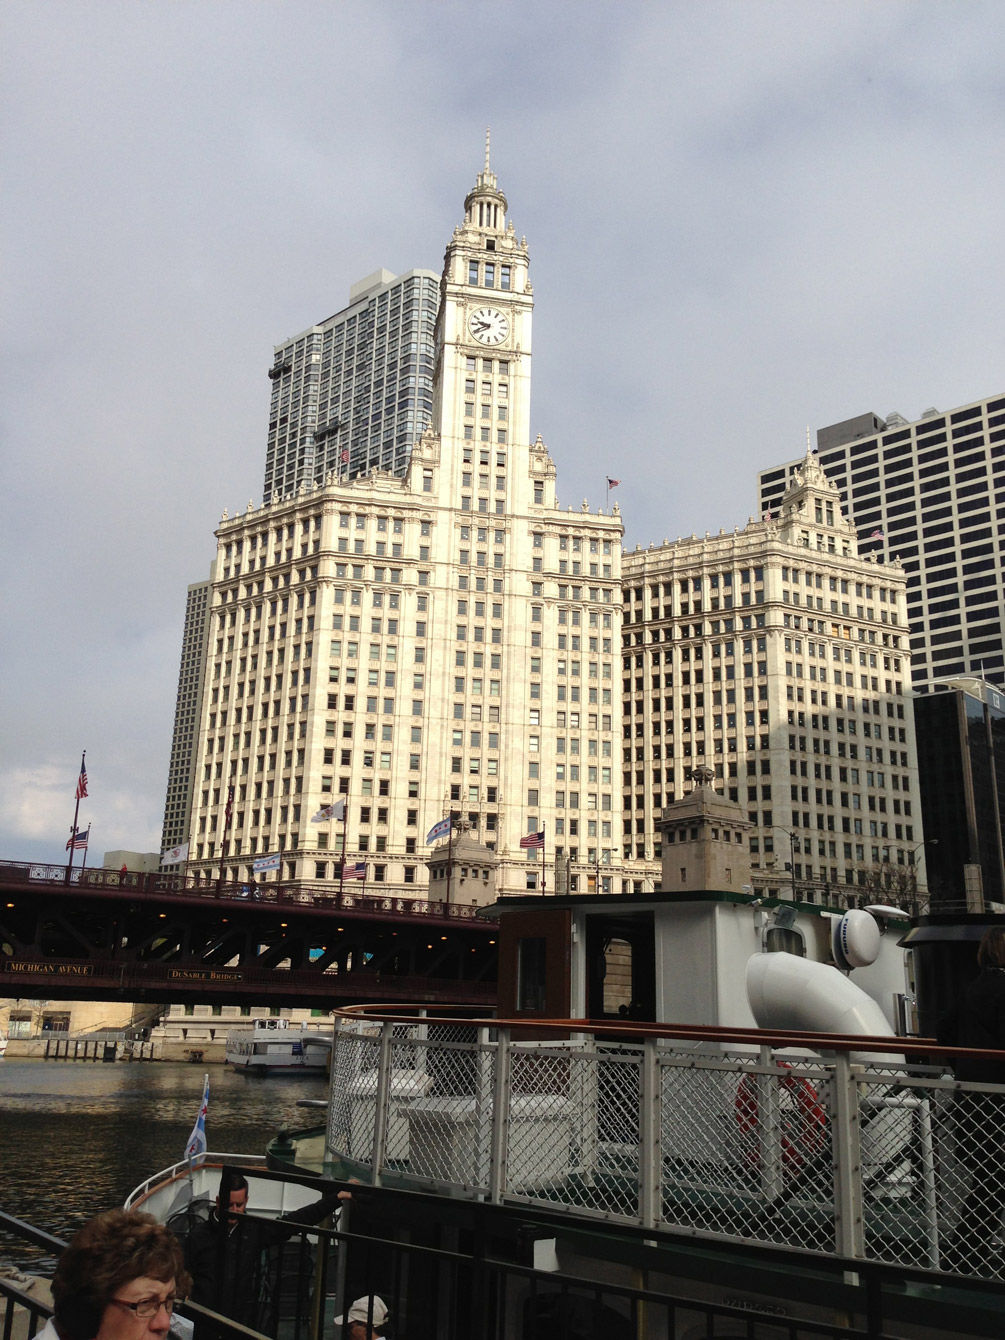 The building that gum bought – The Wrigley Building.